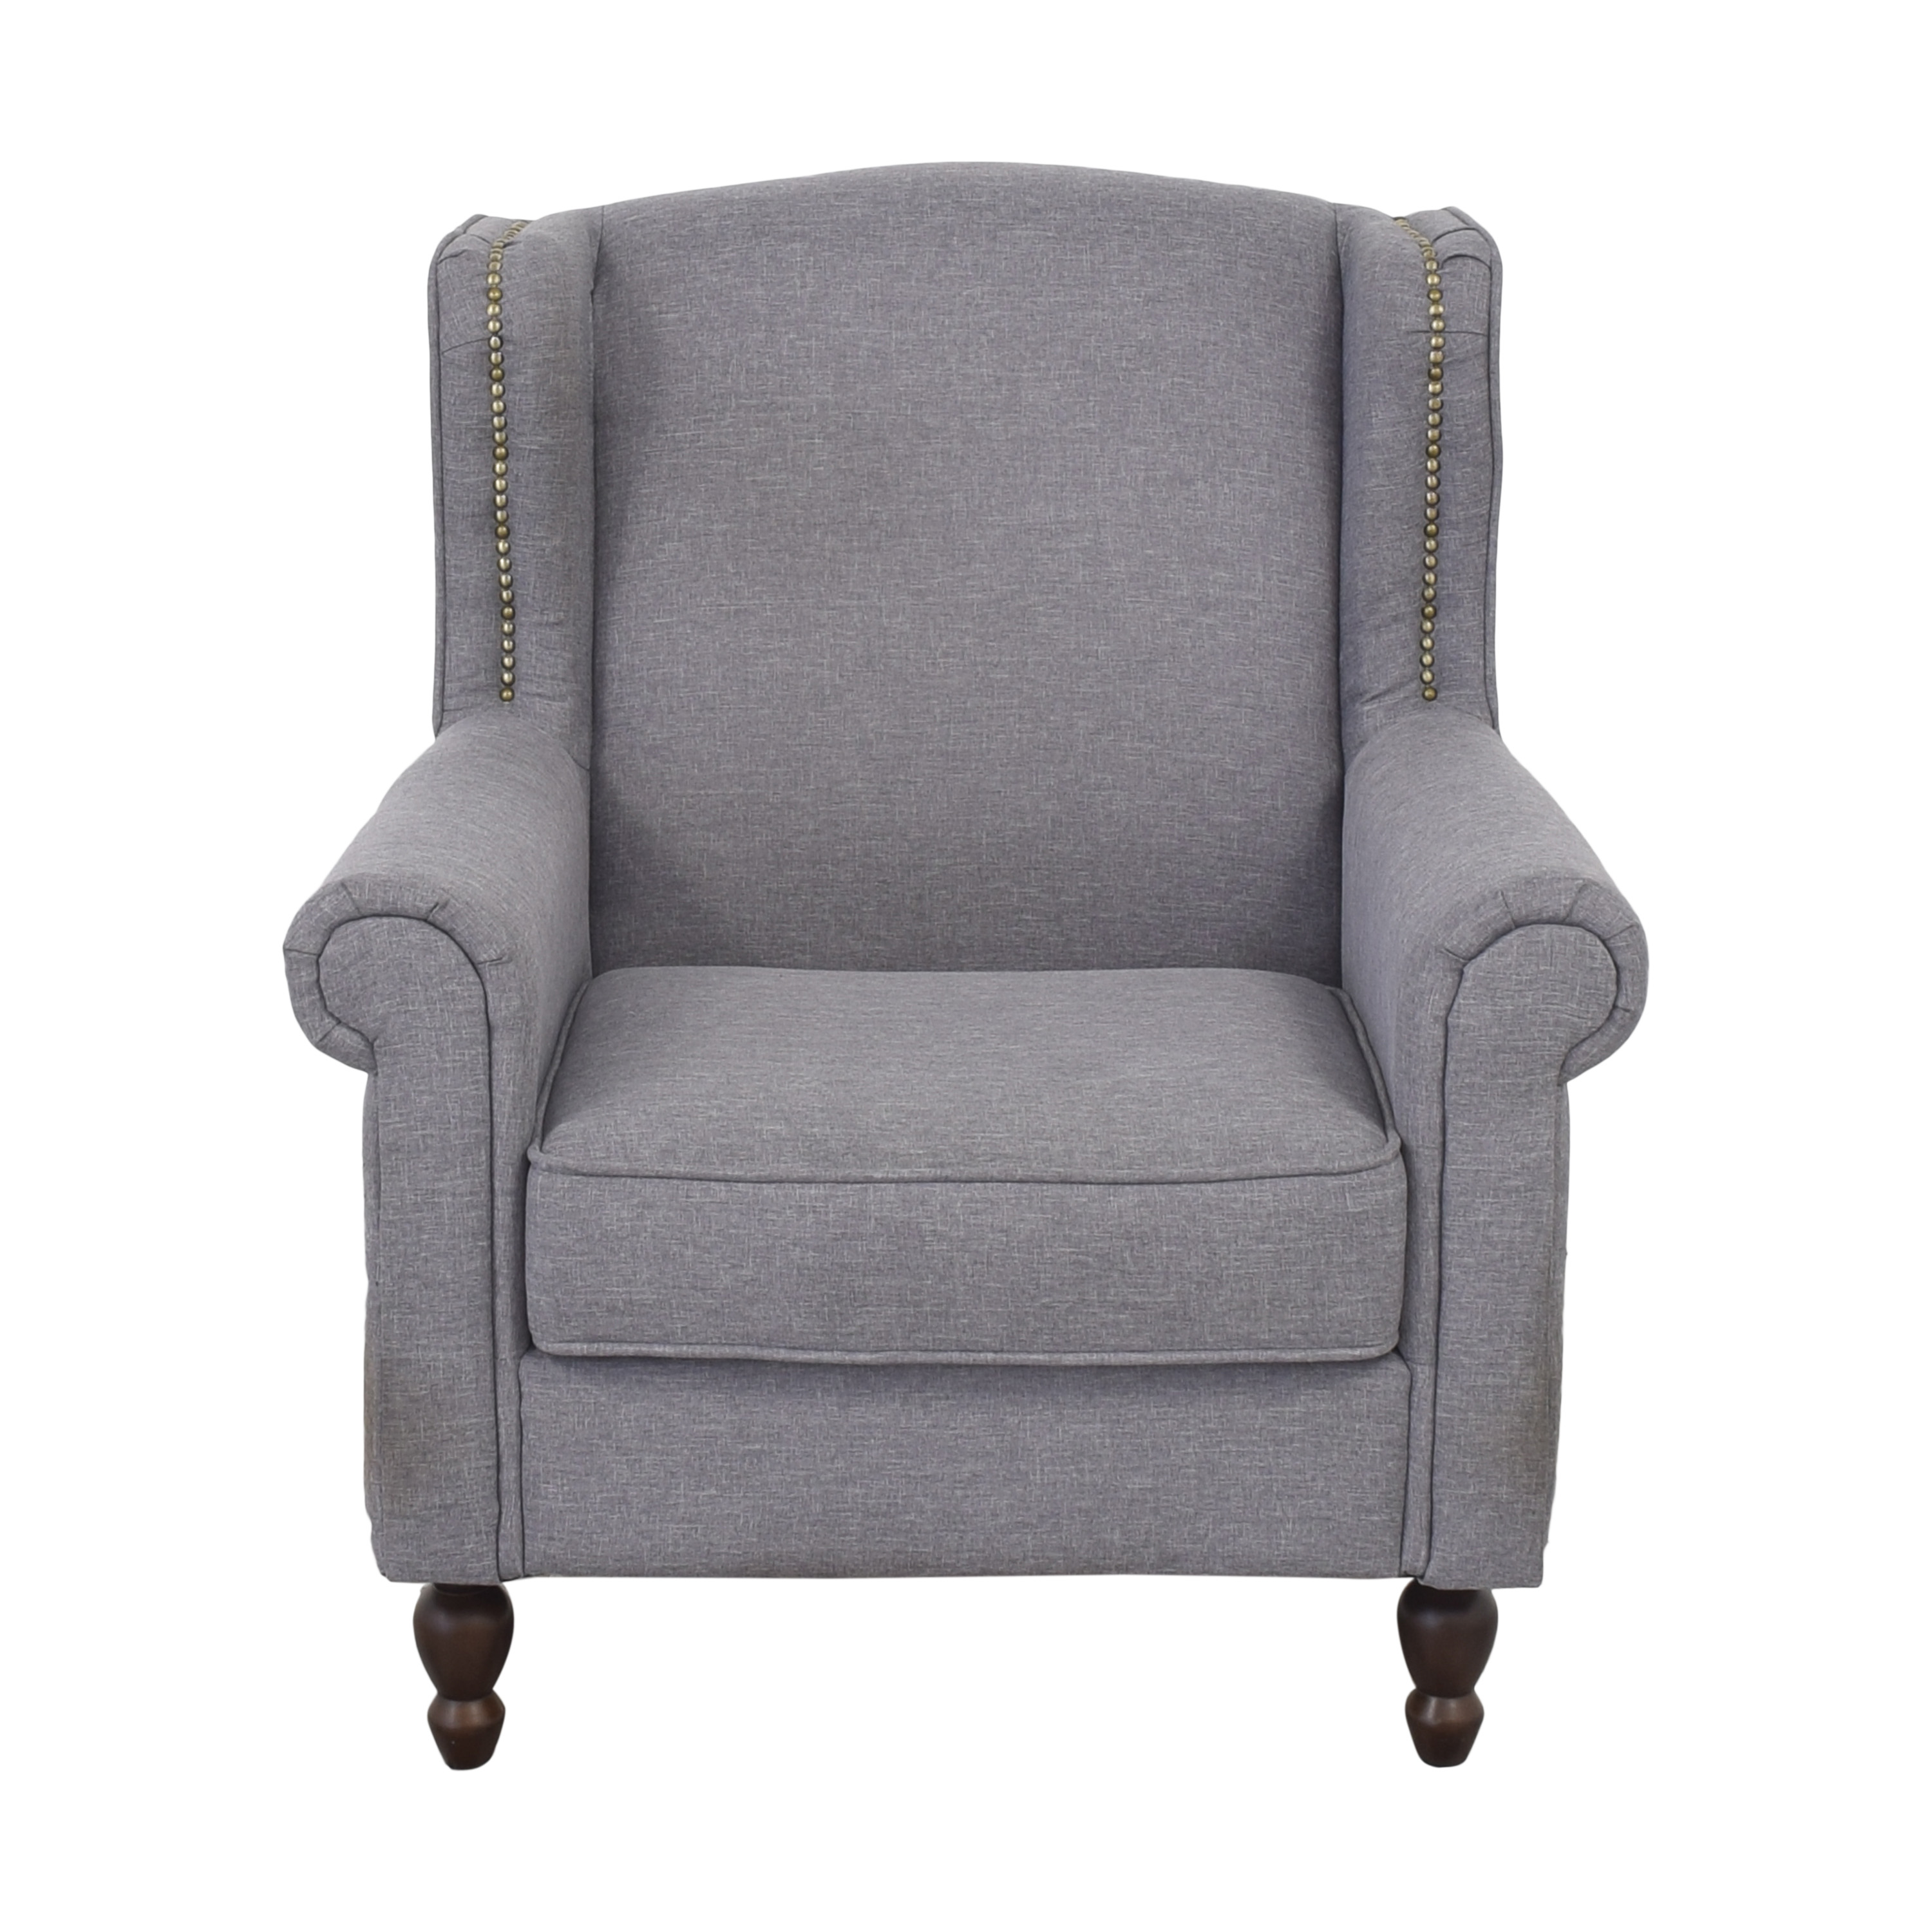 Peter Andrews Peter Andrews Accent Club Chair ma